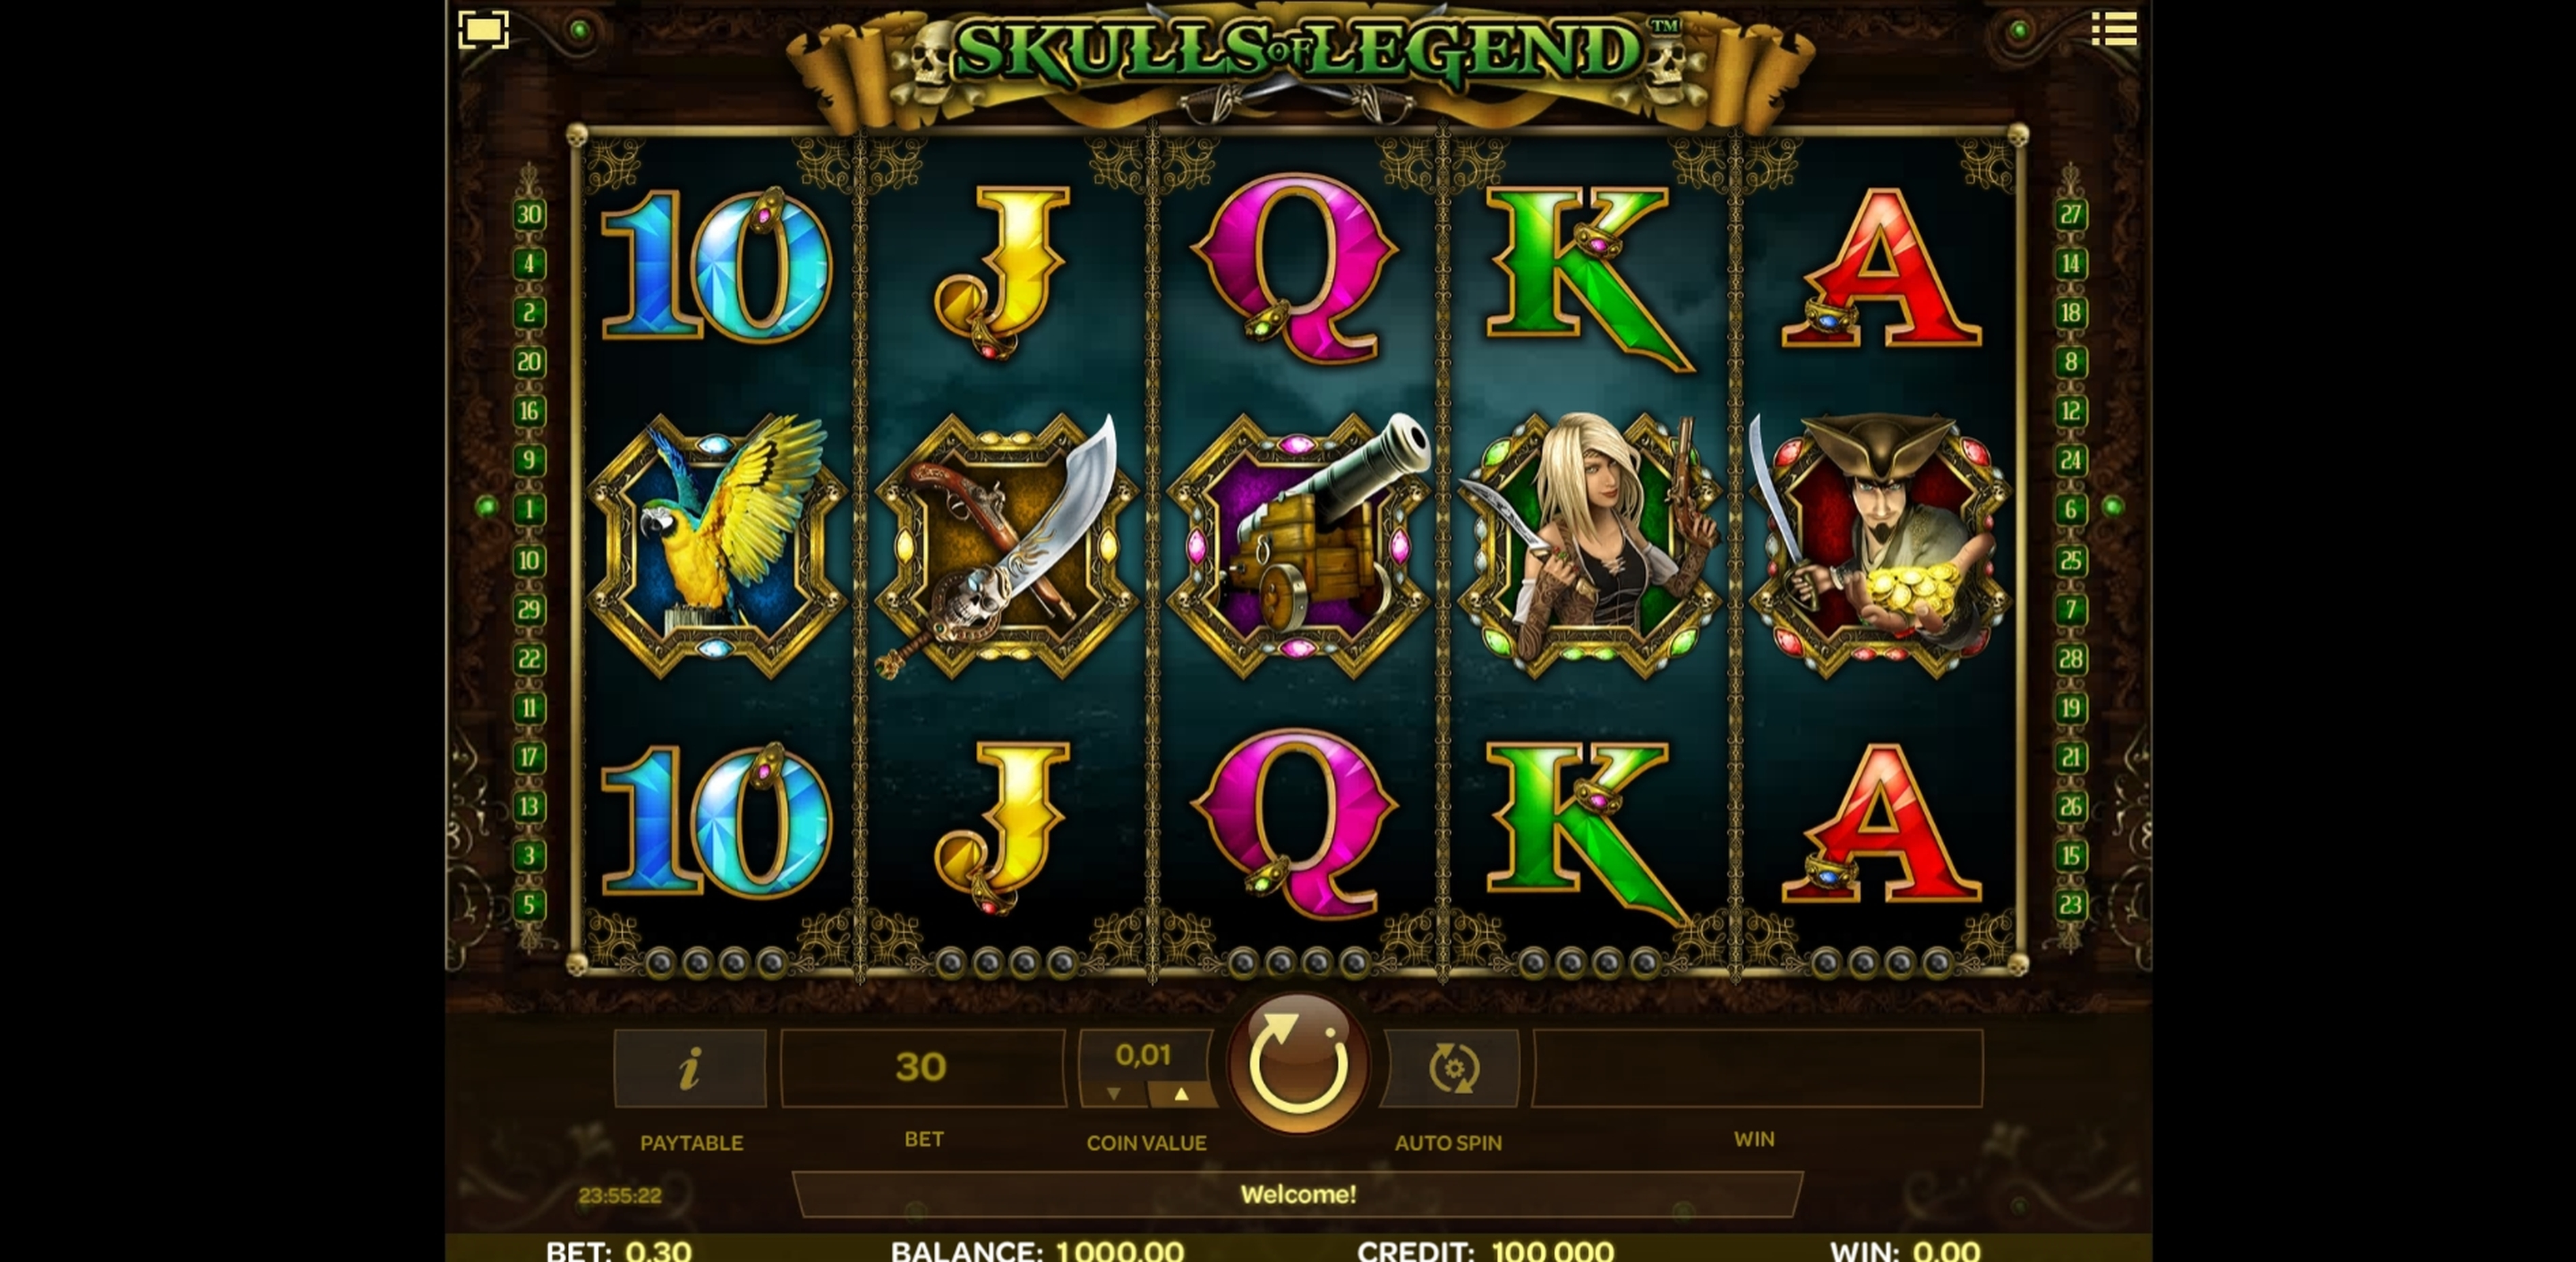 Reels in Skulls of Legend Slot Game by iSoftBet